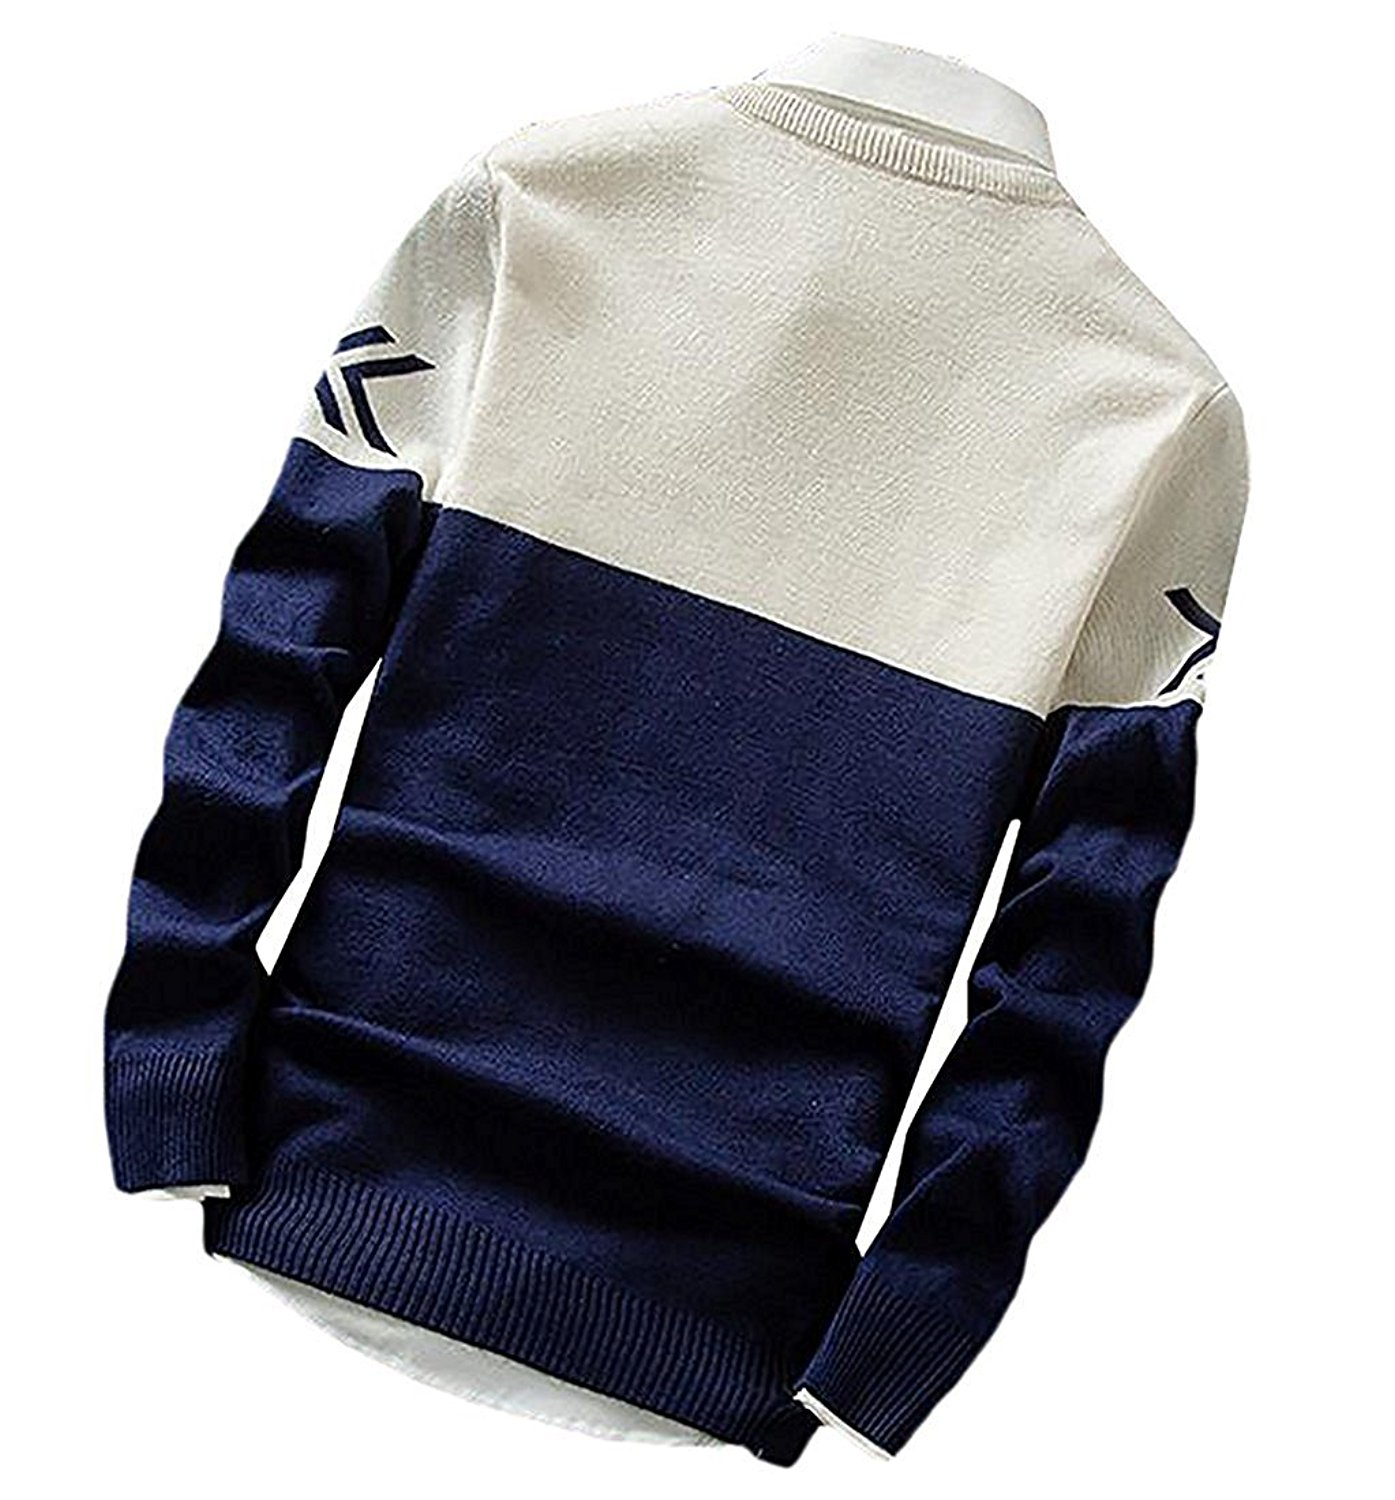 a1f1a97f1ce Get Quotations · B dressy Fashion Mens Casual Letter Print Slim Knit Soft  Basic Pullover Sweaters